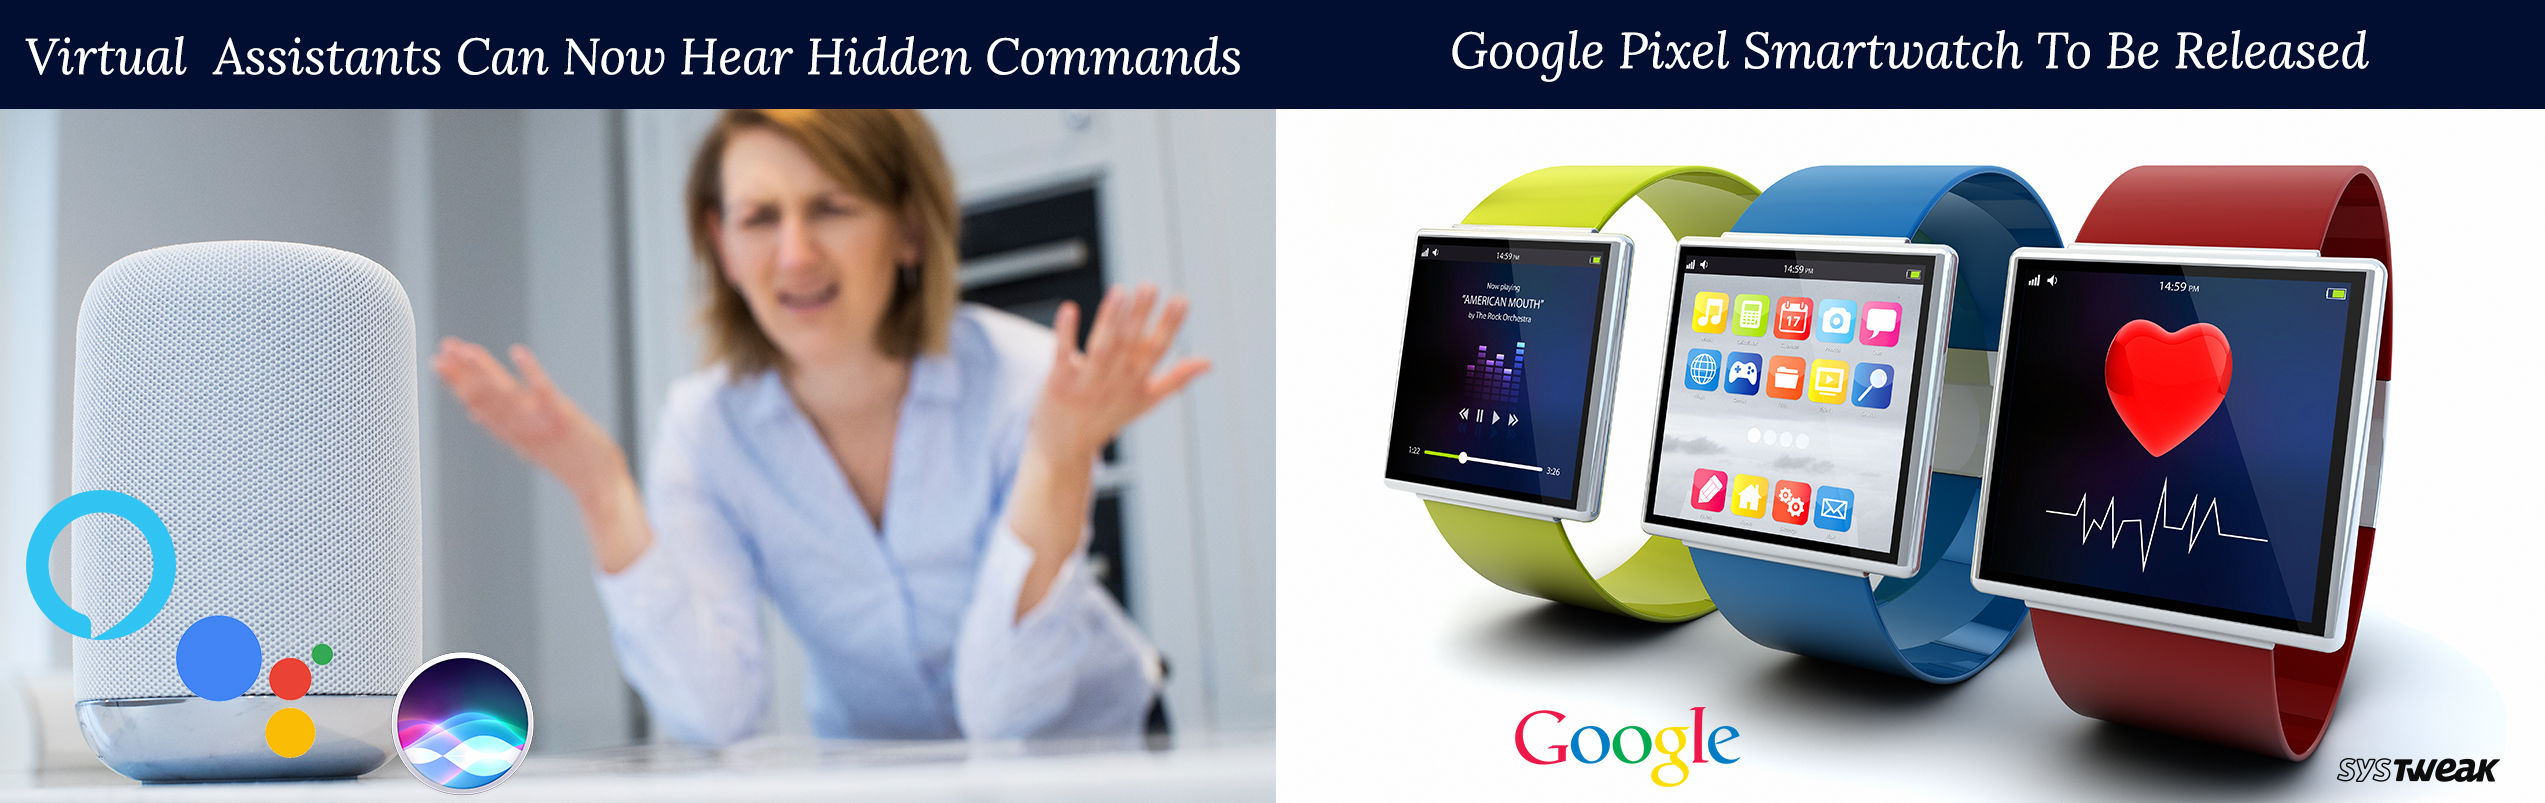 NEWSLETTER: BEWARE OF AI ASSISTANTS & GOOGLE PIXEL SMARTWATCH IN WORKS?